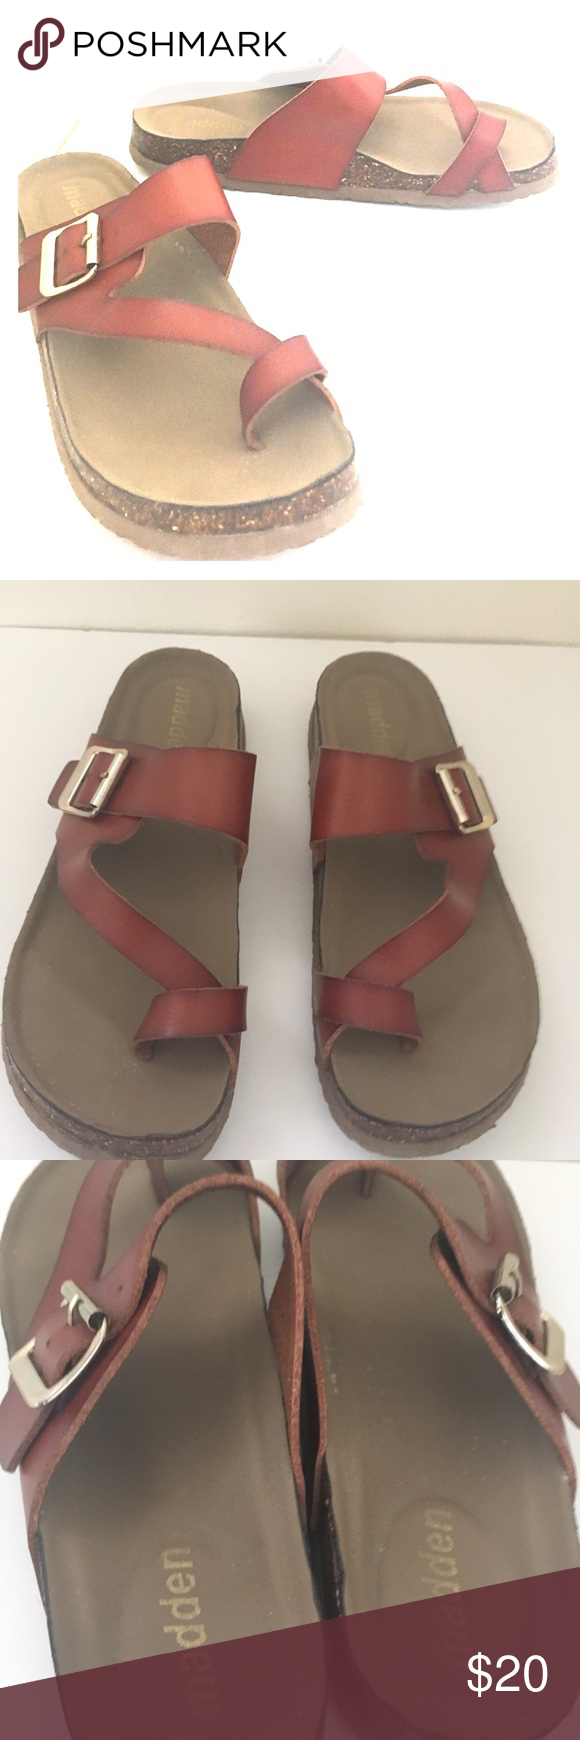 Sandals Size 7 By Madden NYC These Sandals By Madden NYC